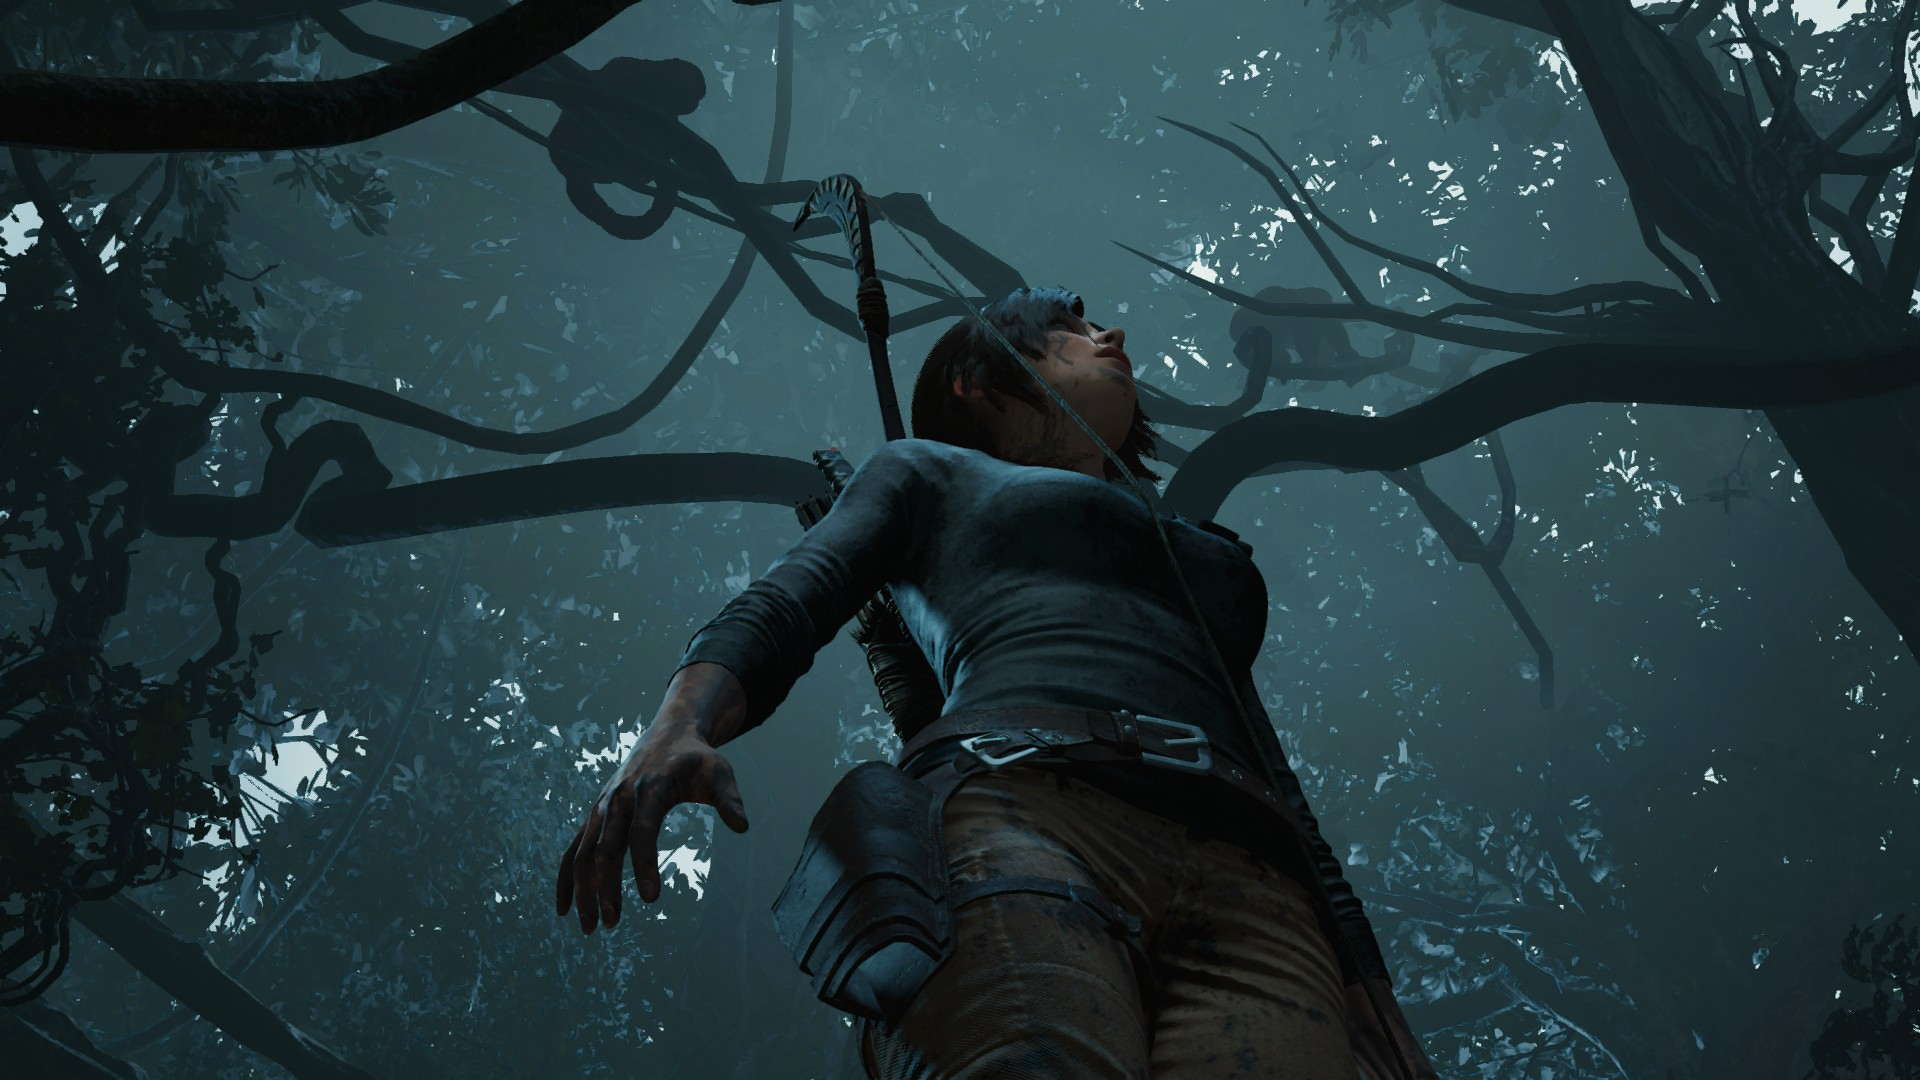 Shadow of the Tomb Raider 69817B9702BAD7A76BA961B203B3432AFCC60464